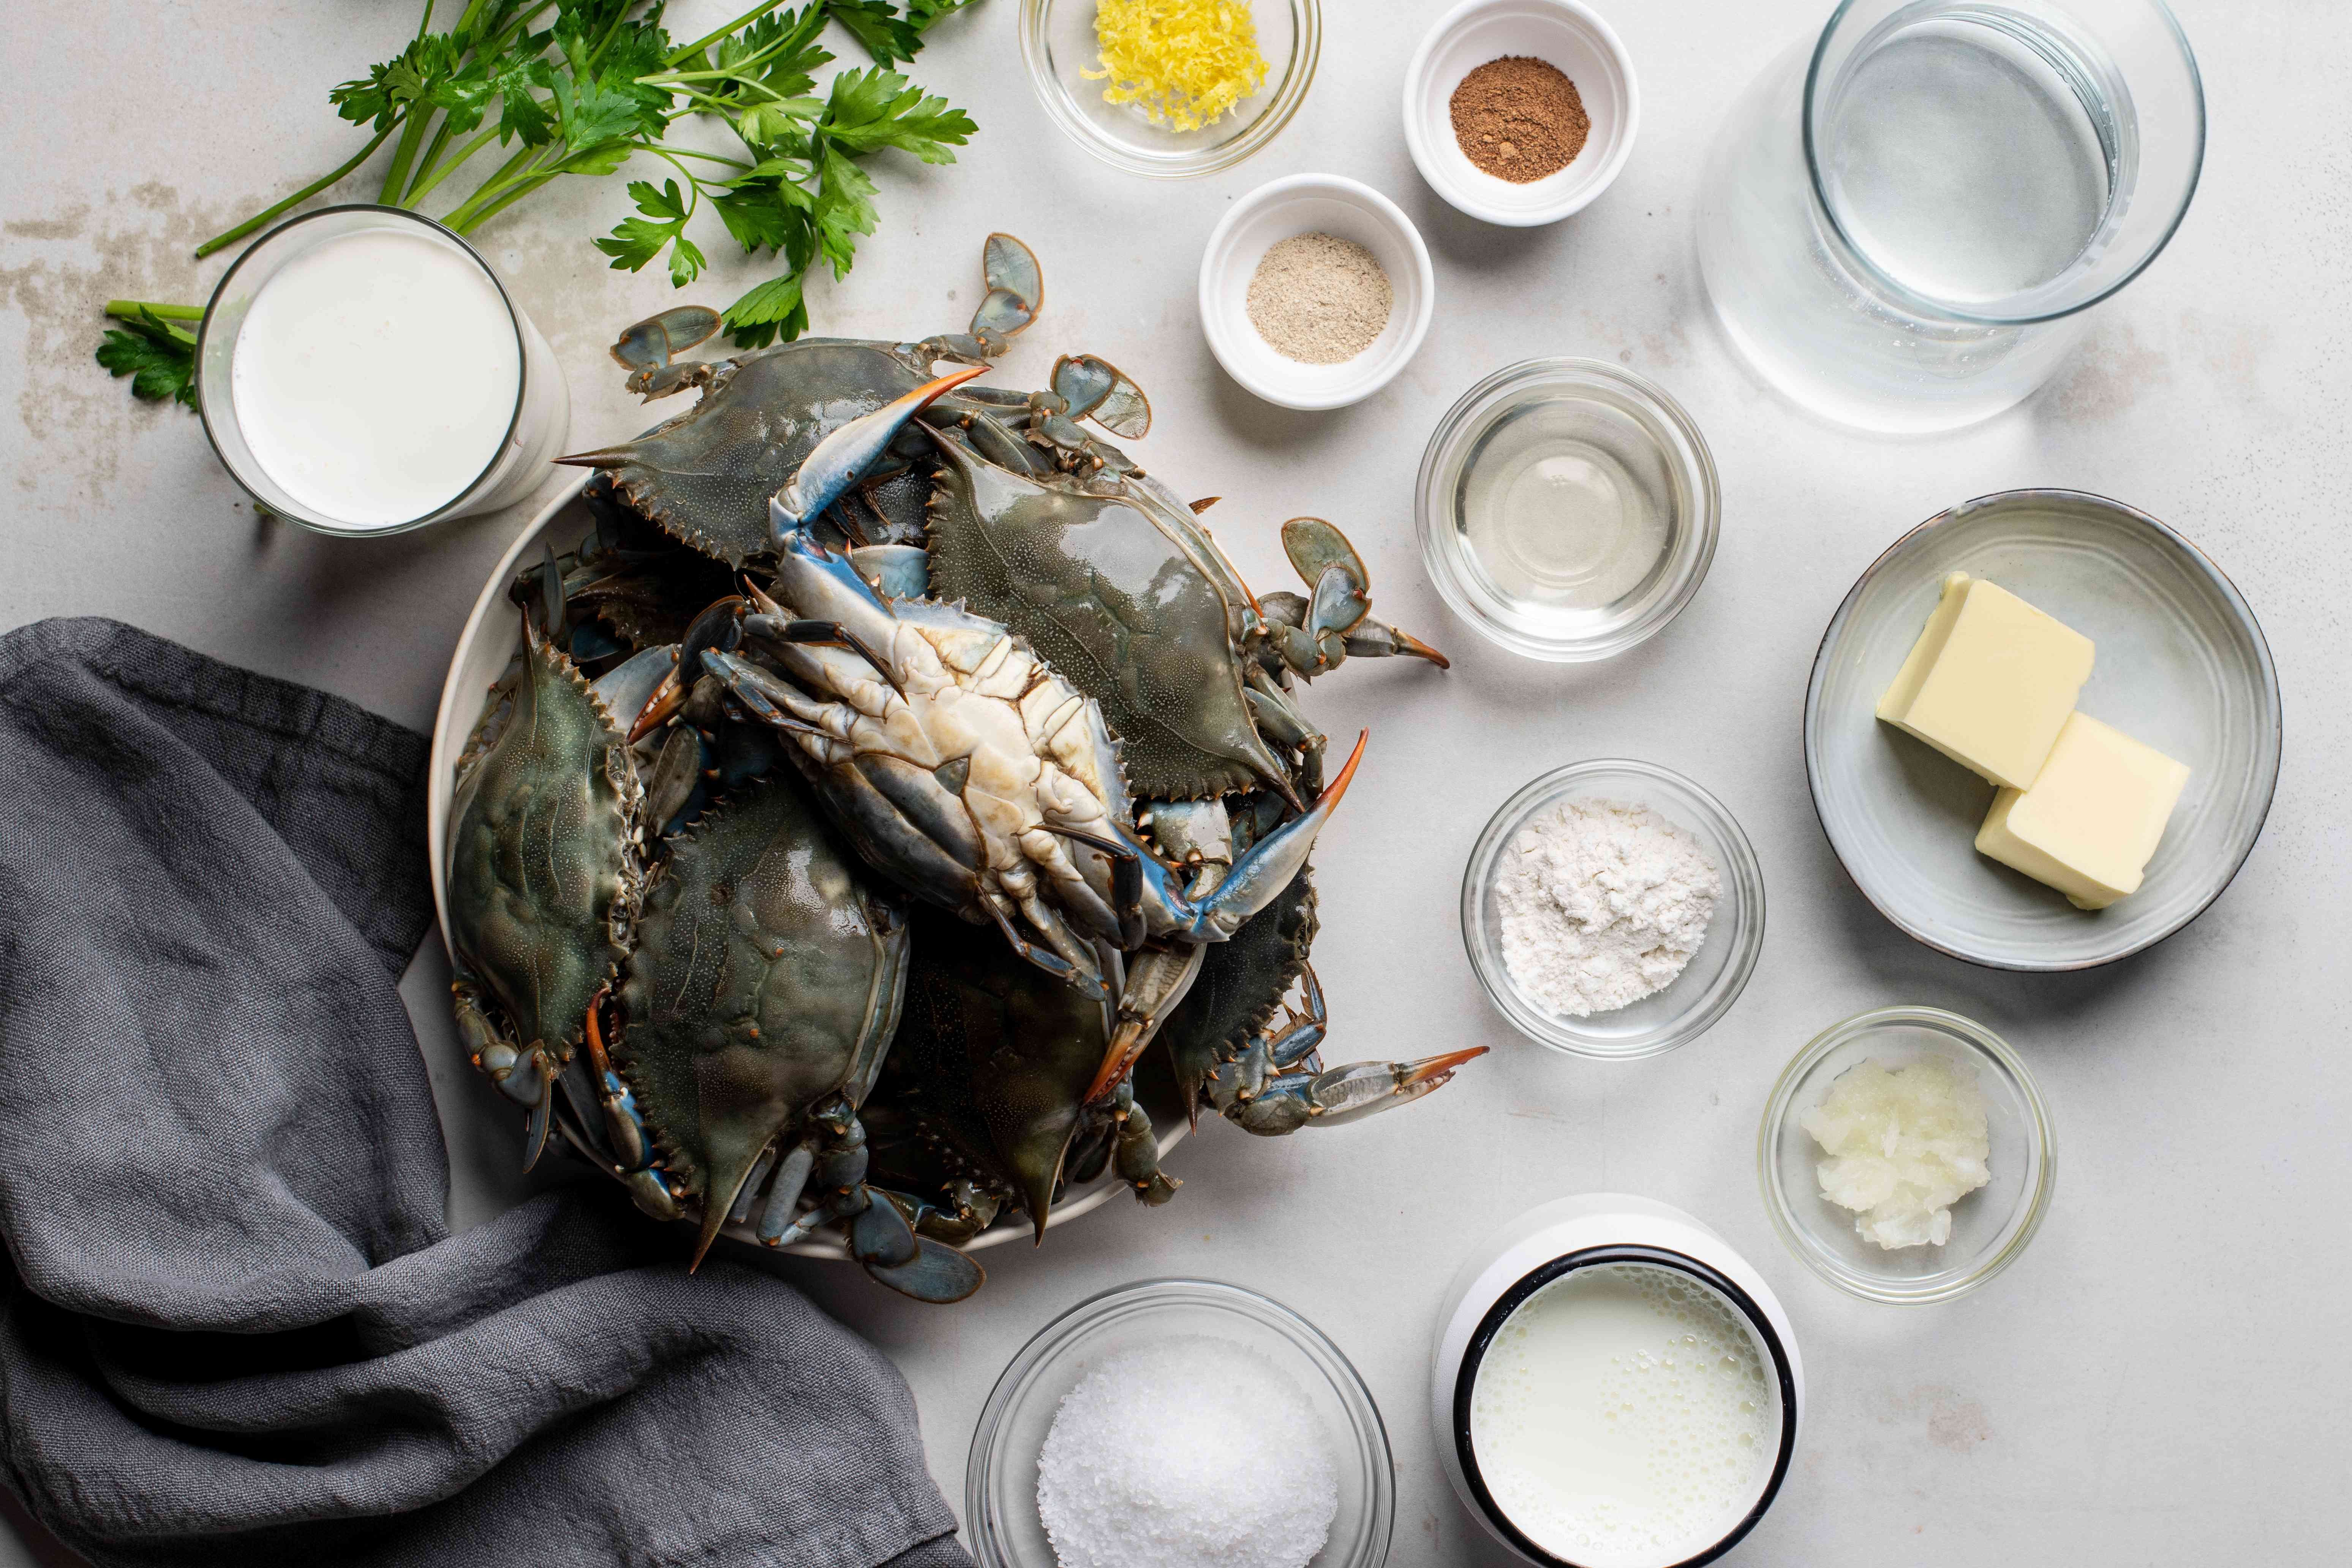 Ingredients for she crab soup